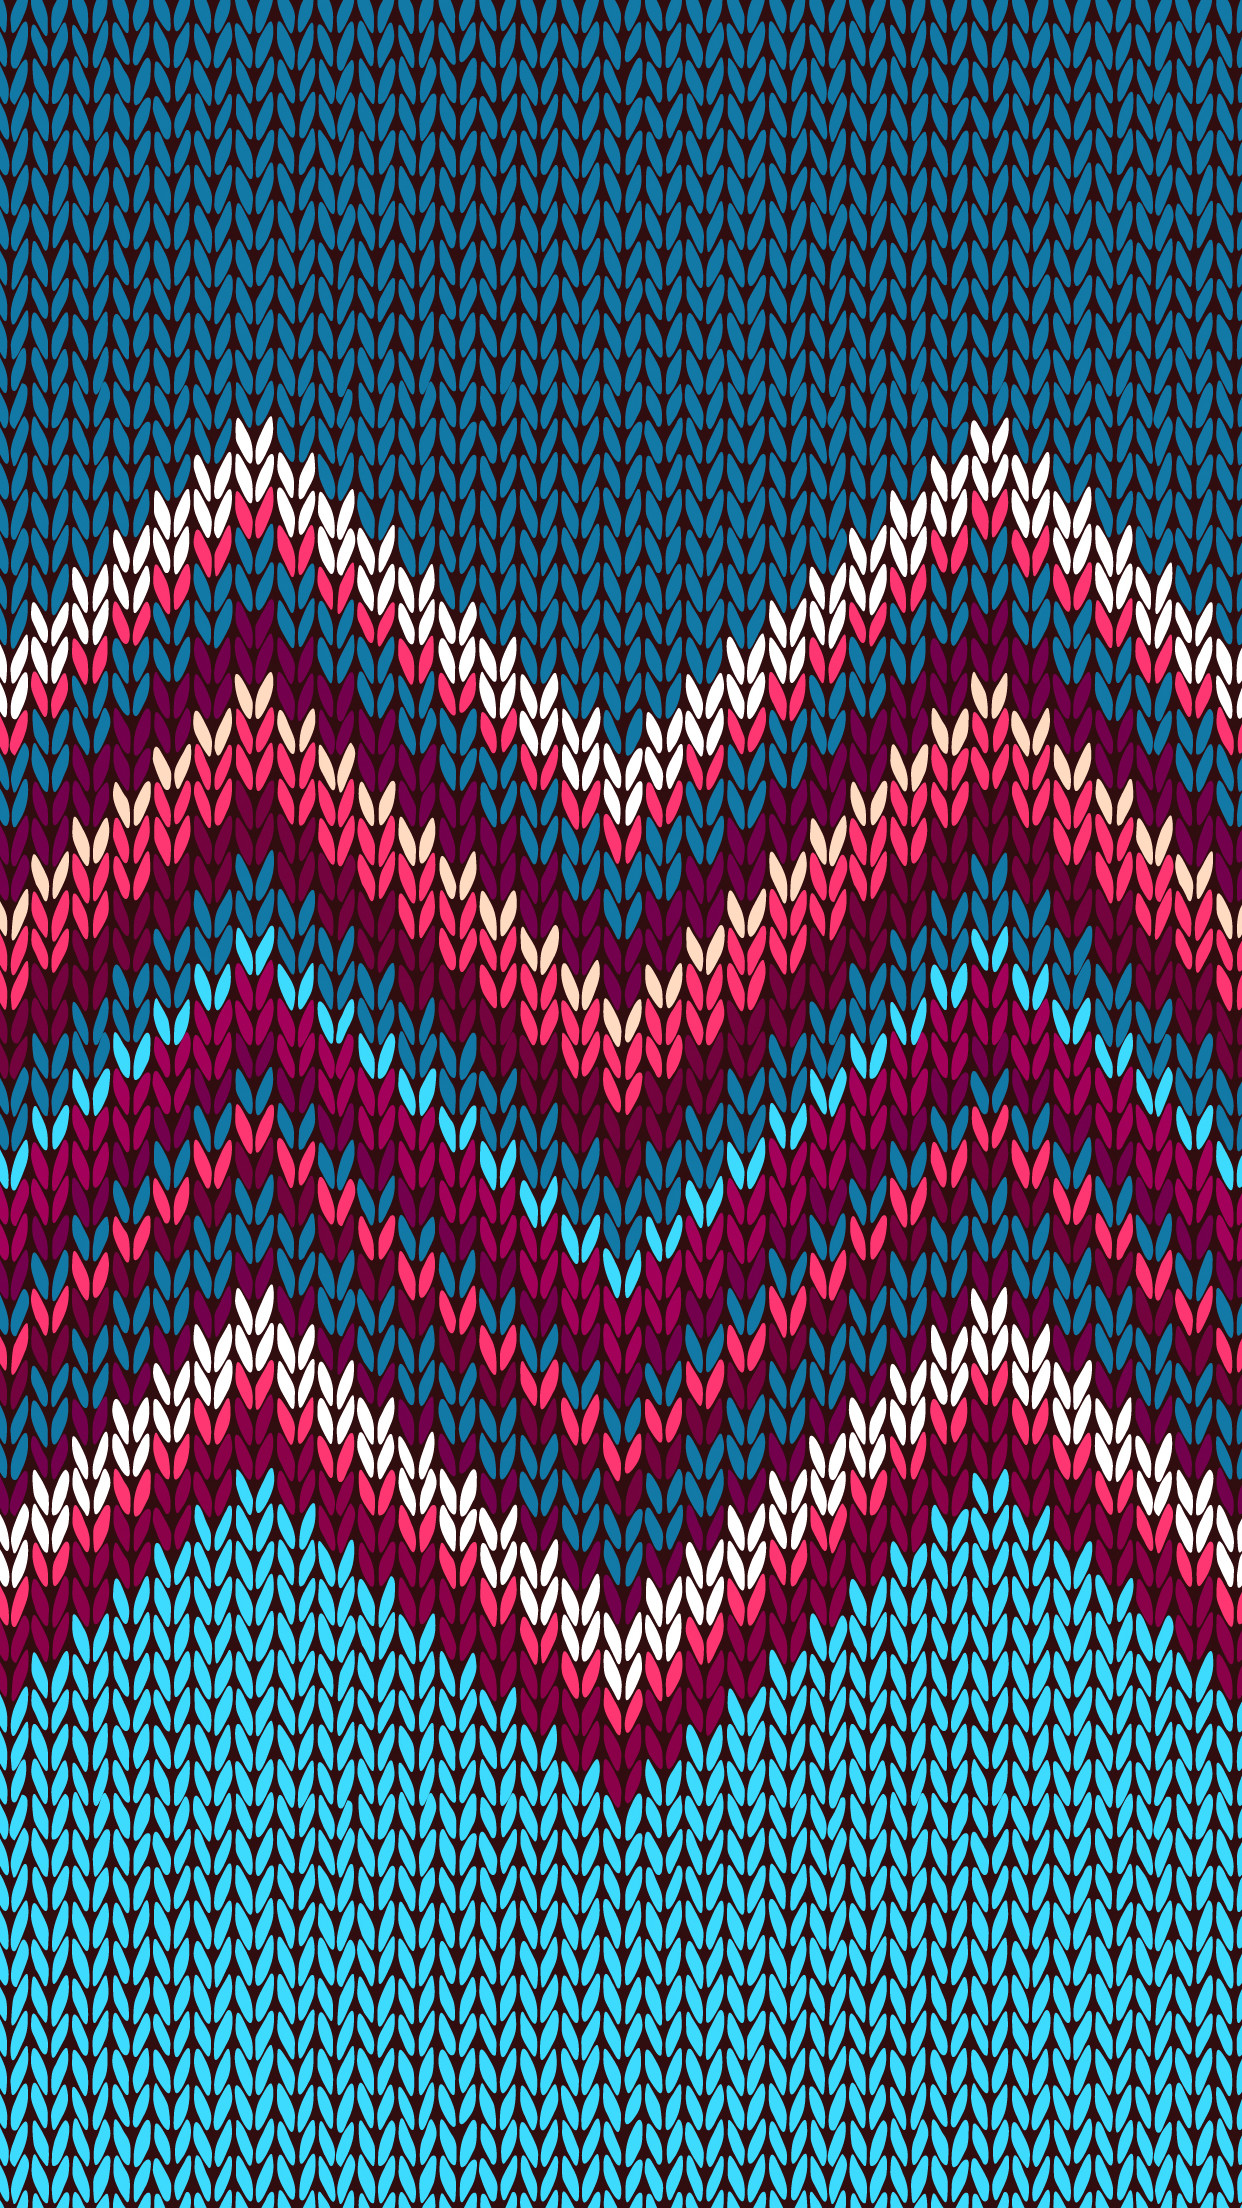 1242x2208, Knitted ˜† Find More Funky Patterns For - Pattern Wallpaper Iphone 6 Hd , HD Wallpaper & Backgrounds